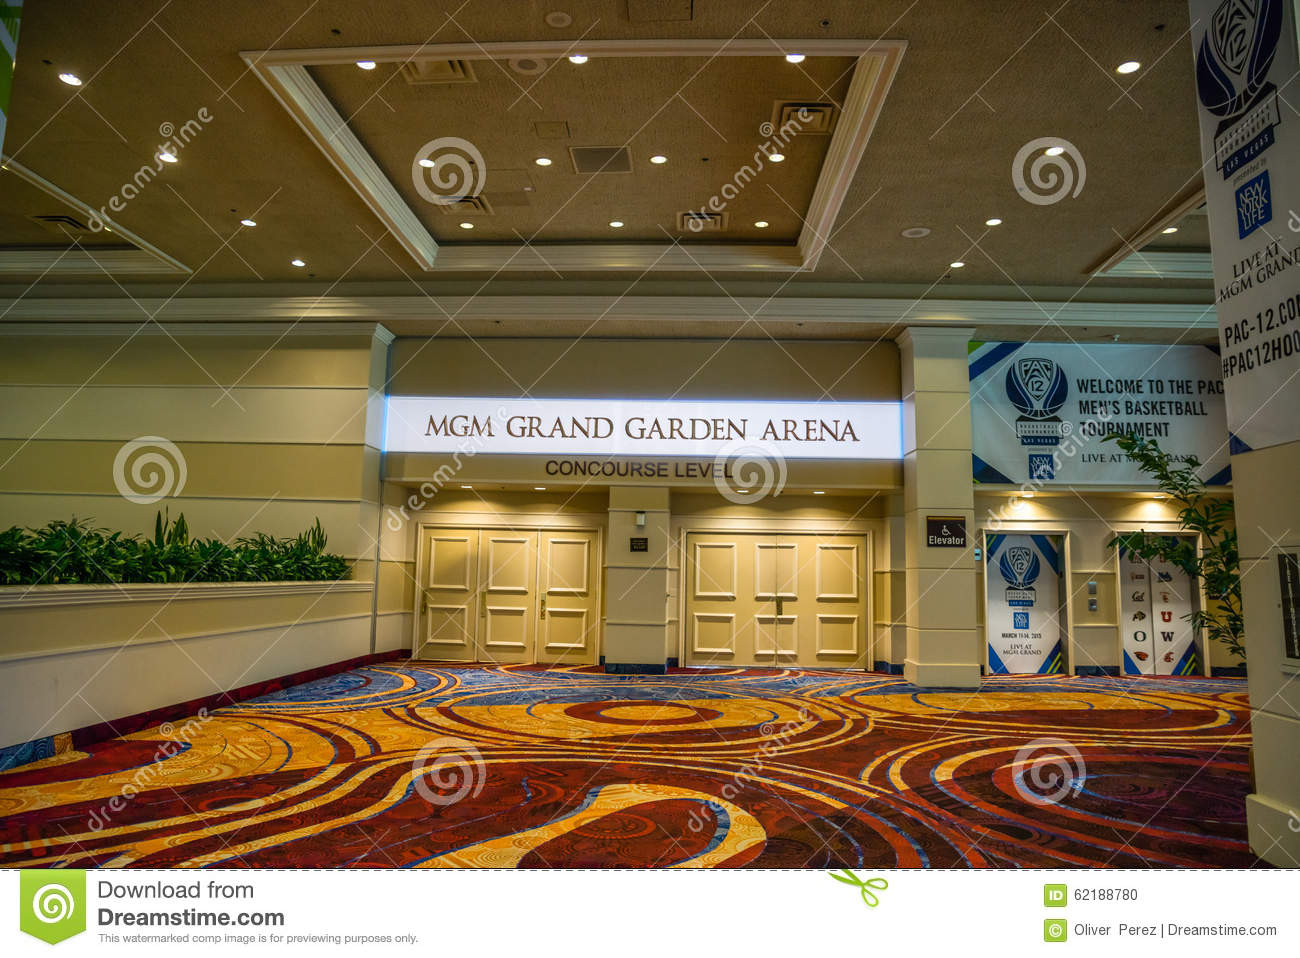 MGM Grand Garden Arena Is A Famous Event Venue In Las Vegas